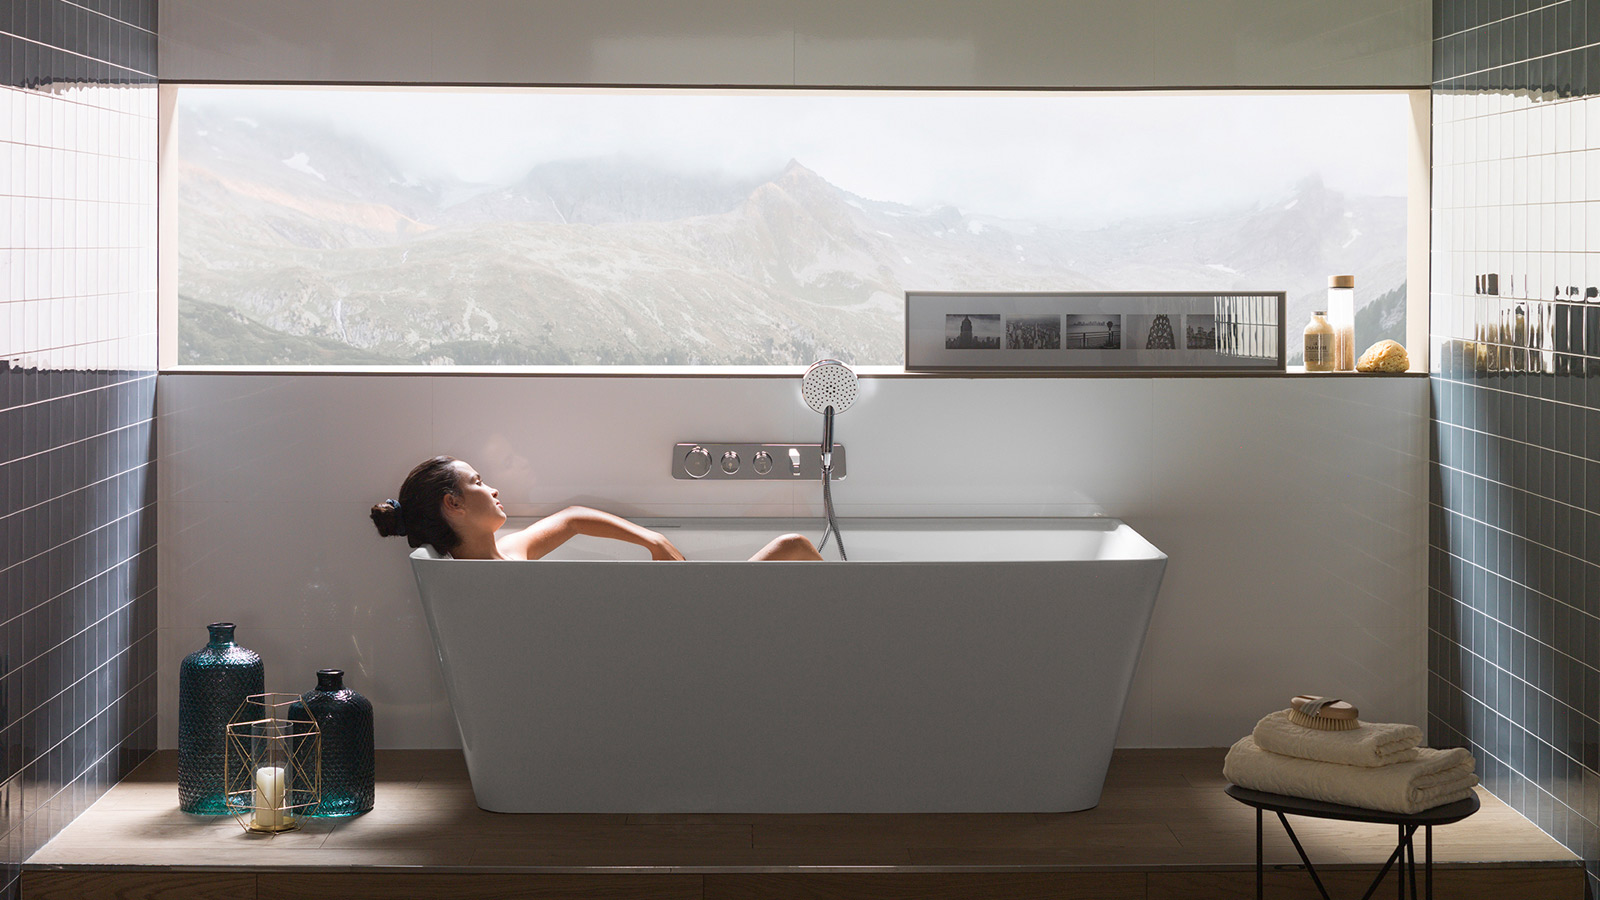 The Pure Line collection by Noken enhances the Wellness experience through hydrotherapy and chromotherapy alike